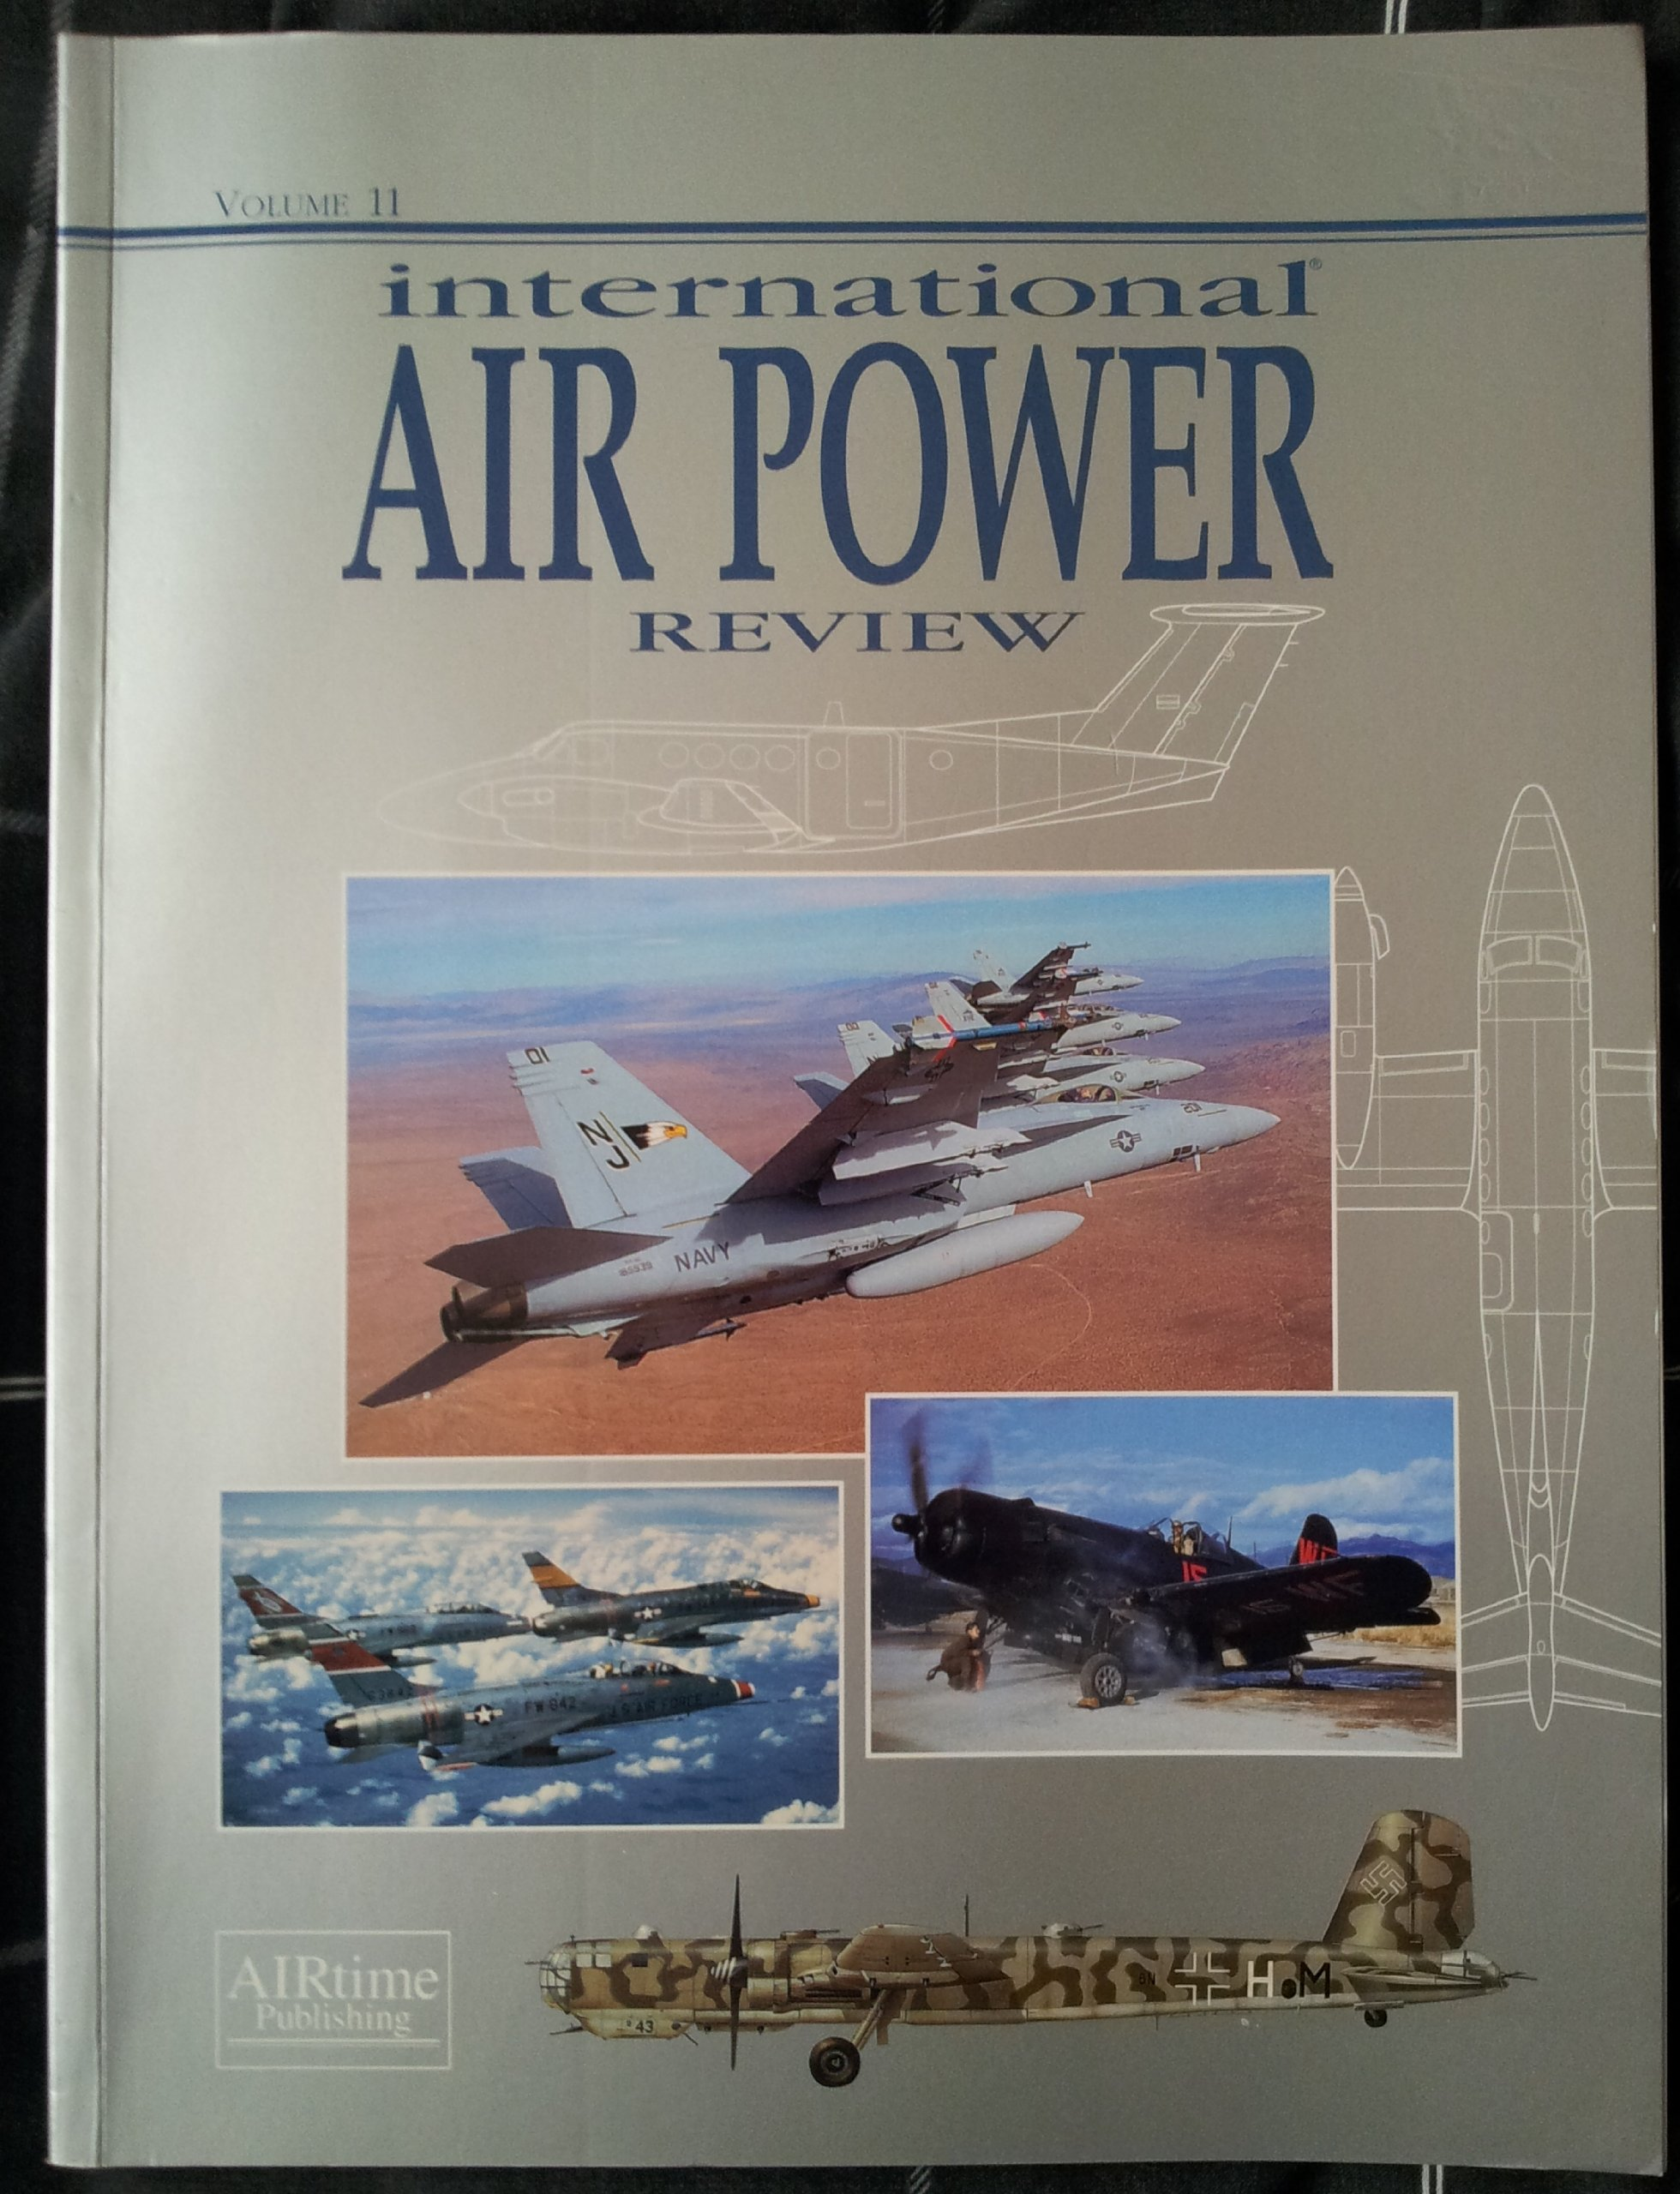 International Air Power Review, Vol. 11